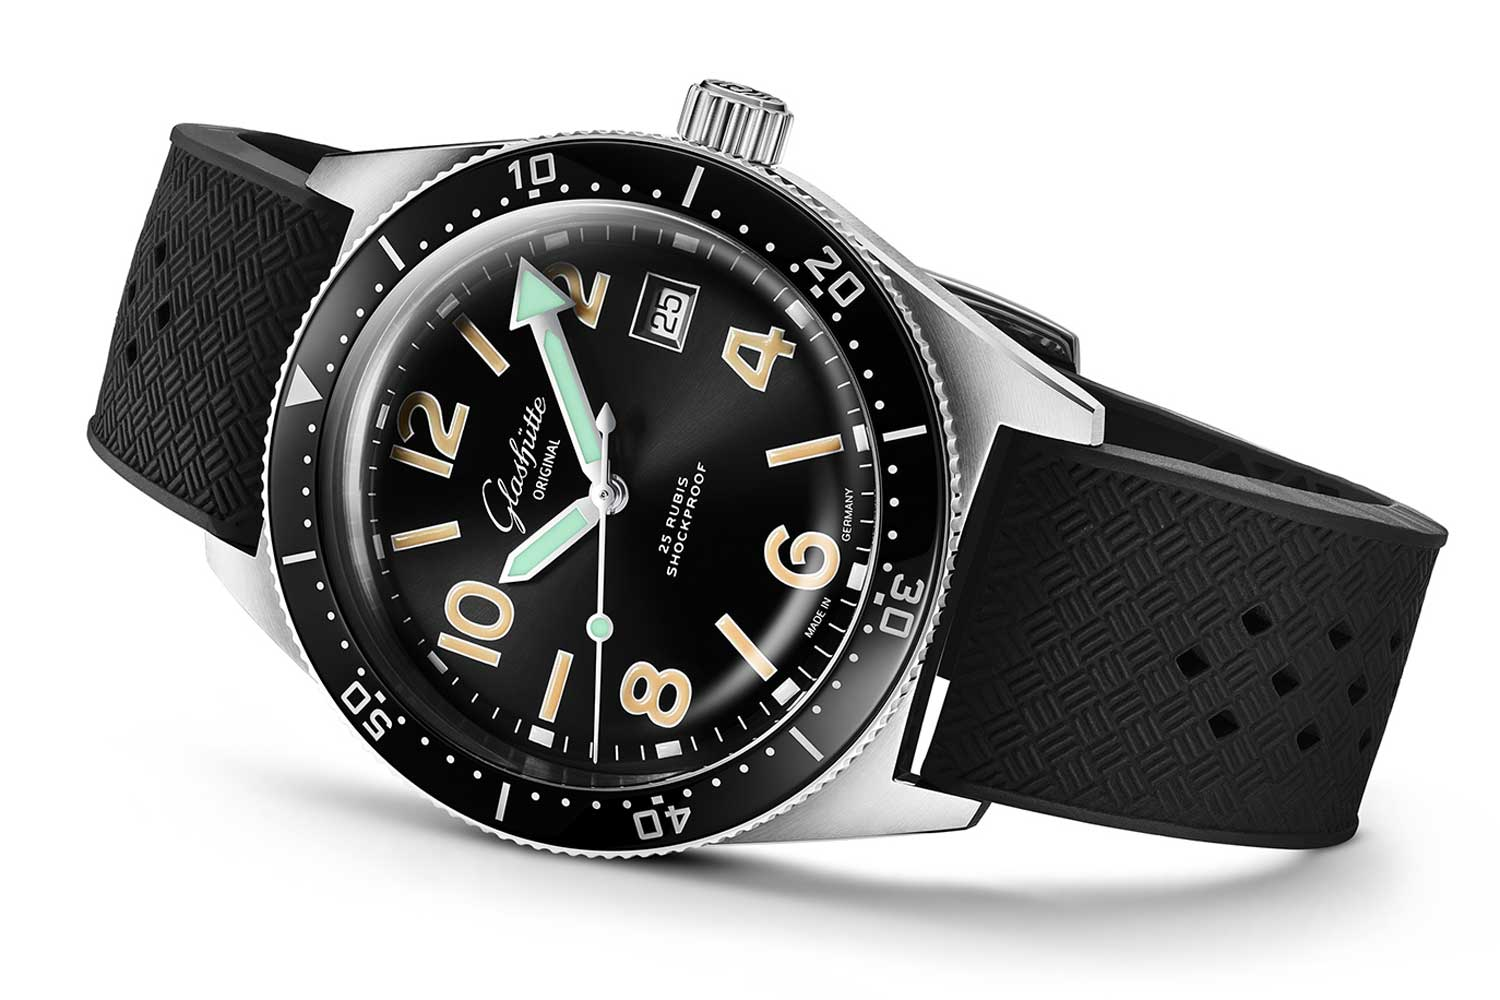 The limited edition SeaQ 1969 is inspired by a watch from the same year